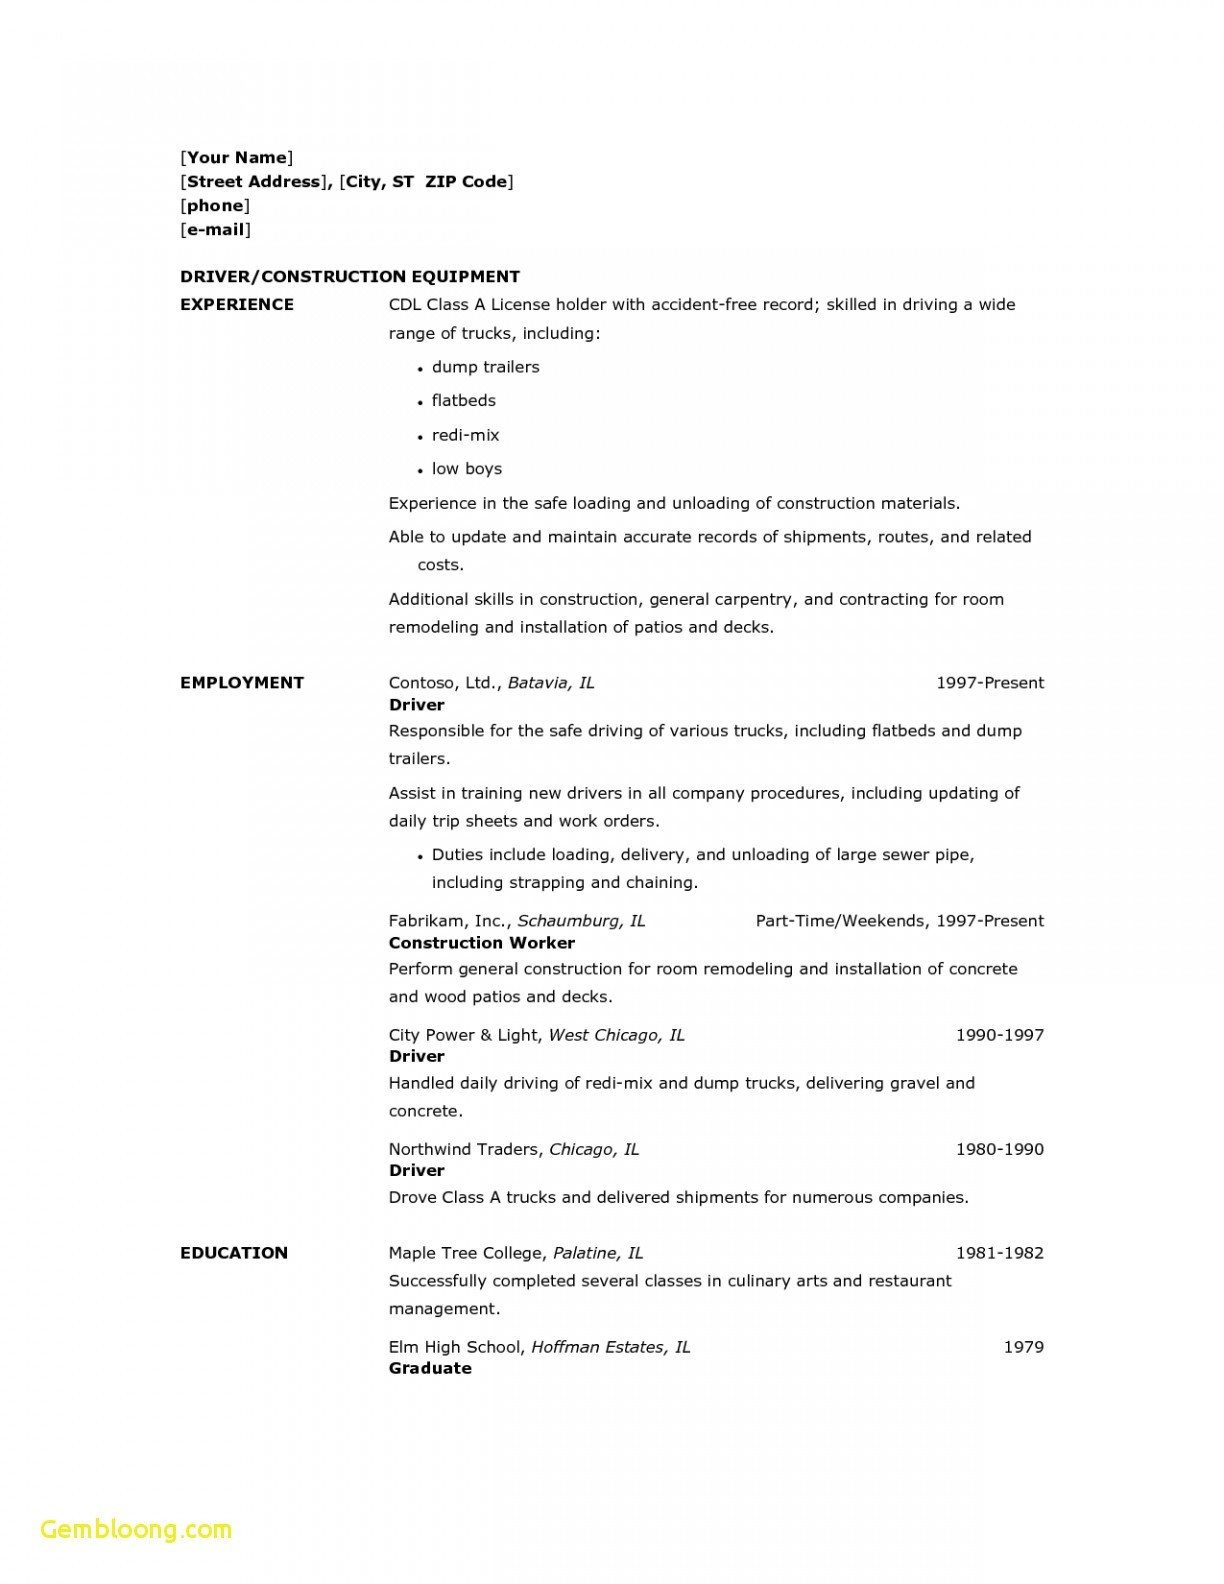 Cdl Truck Driver Resume - Cdl Truck Driver Resume New 17 Truck Driving Resume Examples